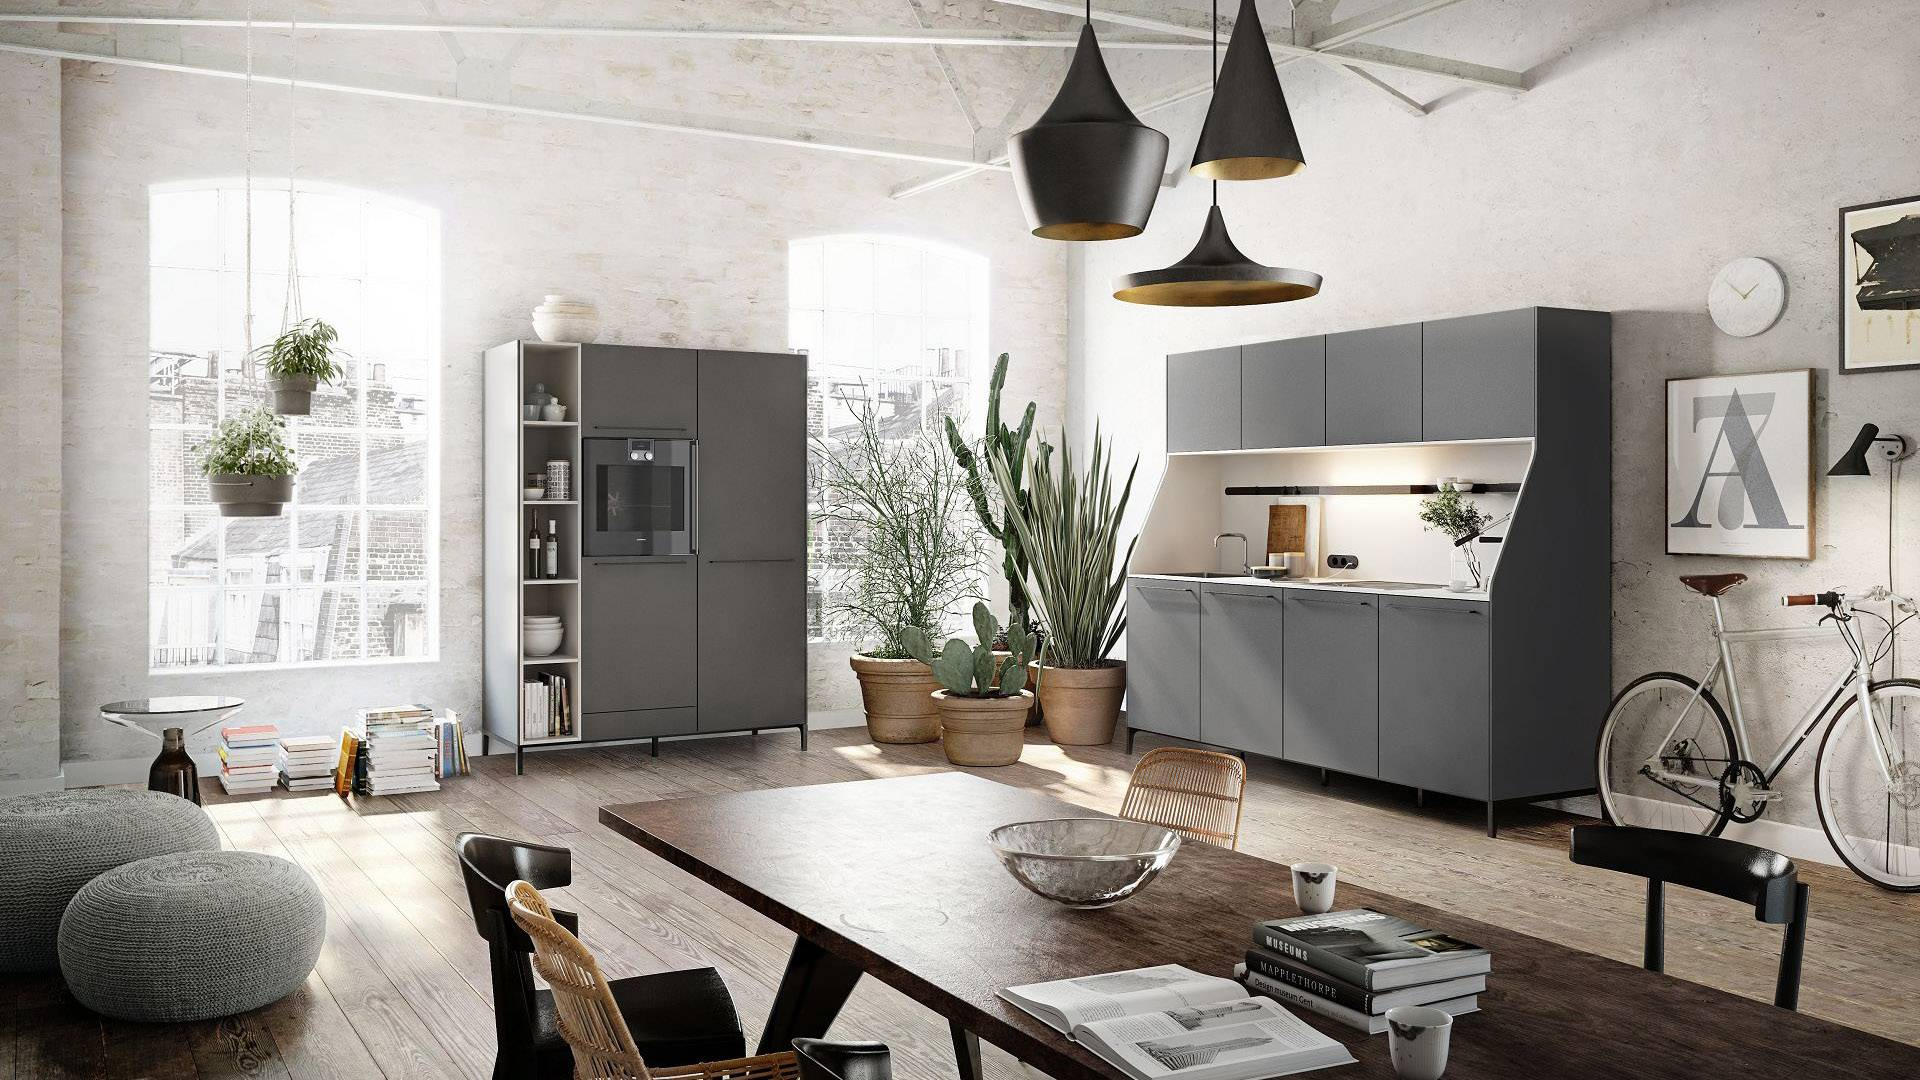 SieMatic 29 kitchen sideboard and freestanding tall cabinet in graphite grey from the Urban style collection